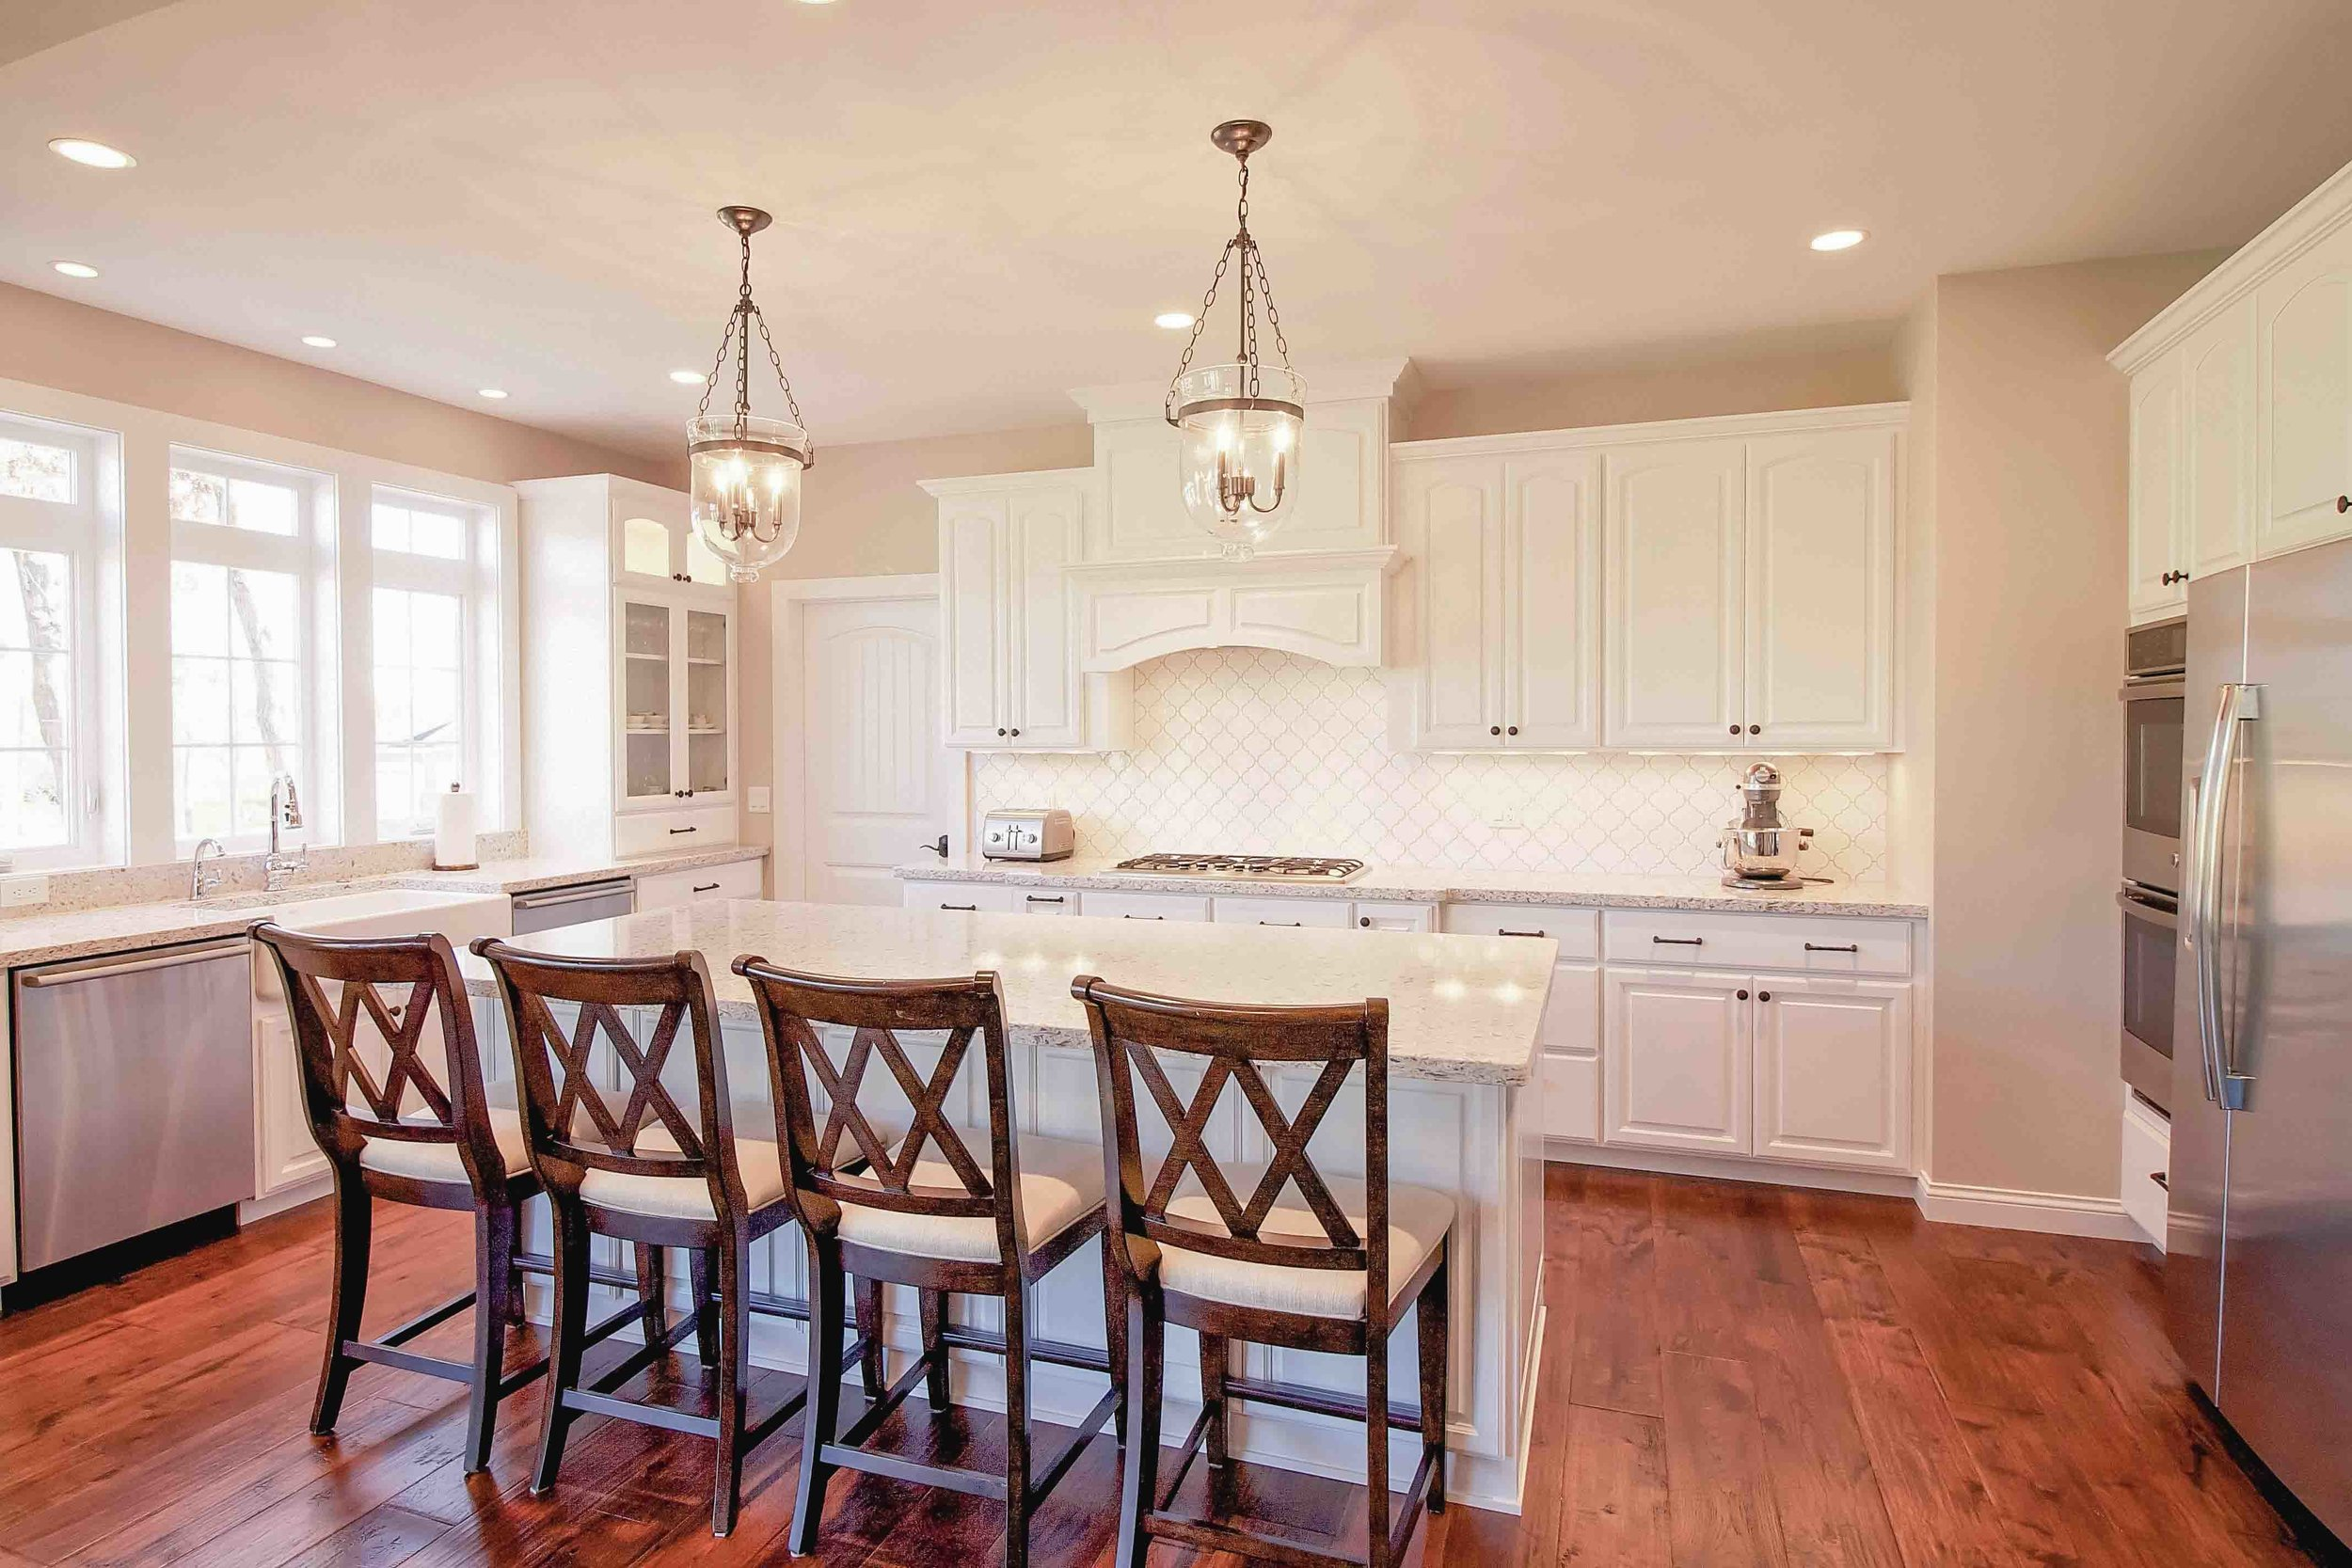 - A classic French Country kitchen with a concealed range hood.